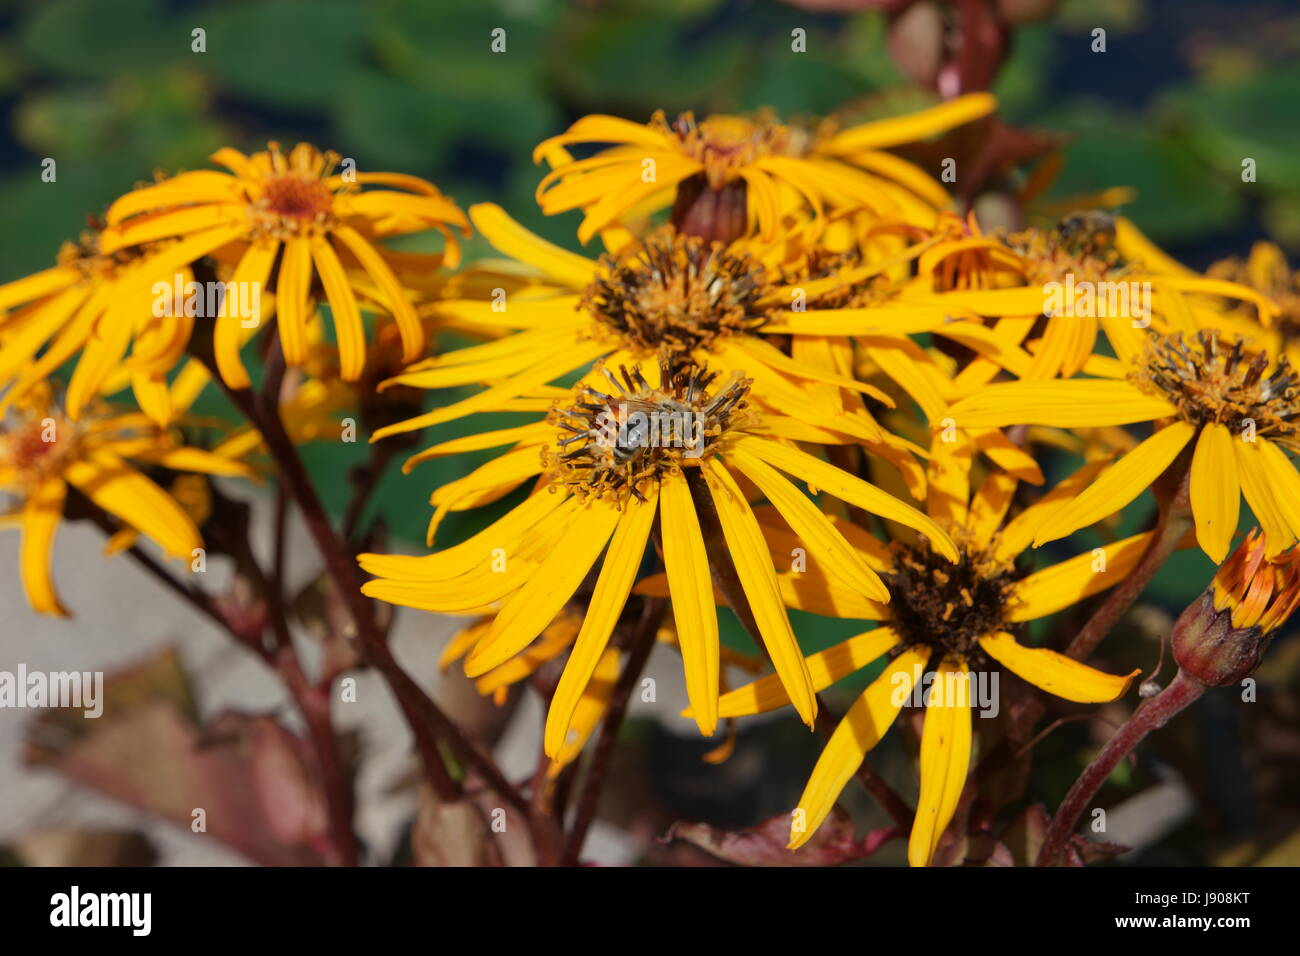 Yellow flowers (rough oxeyes, heliopsis helianthoides) with a bee sitting on them. - Stock Image